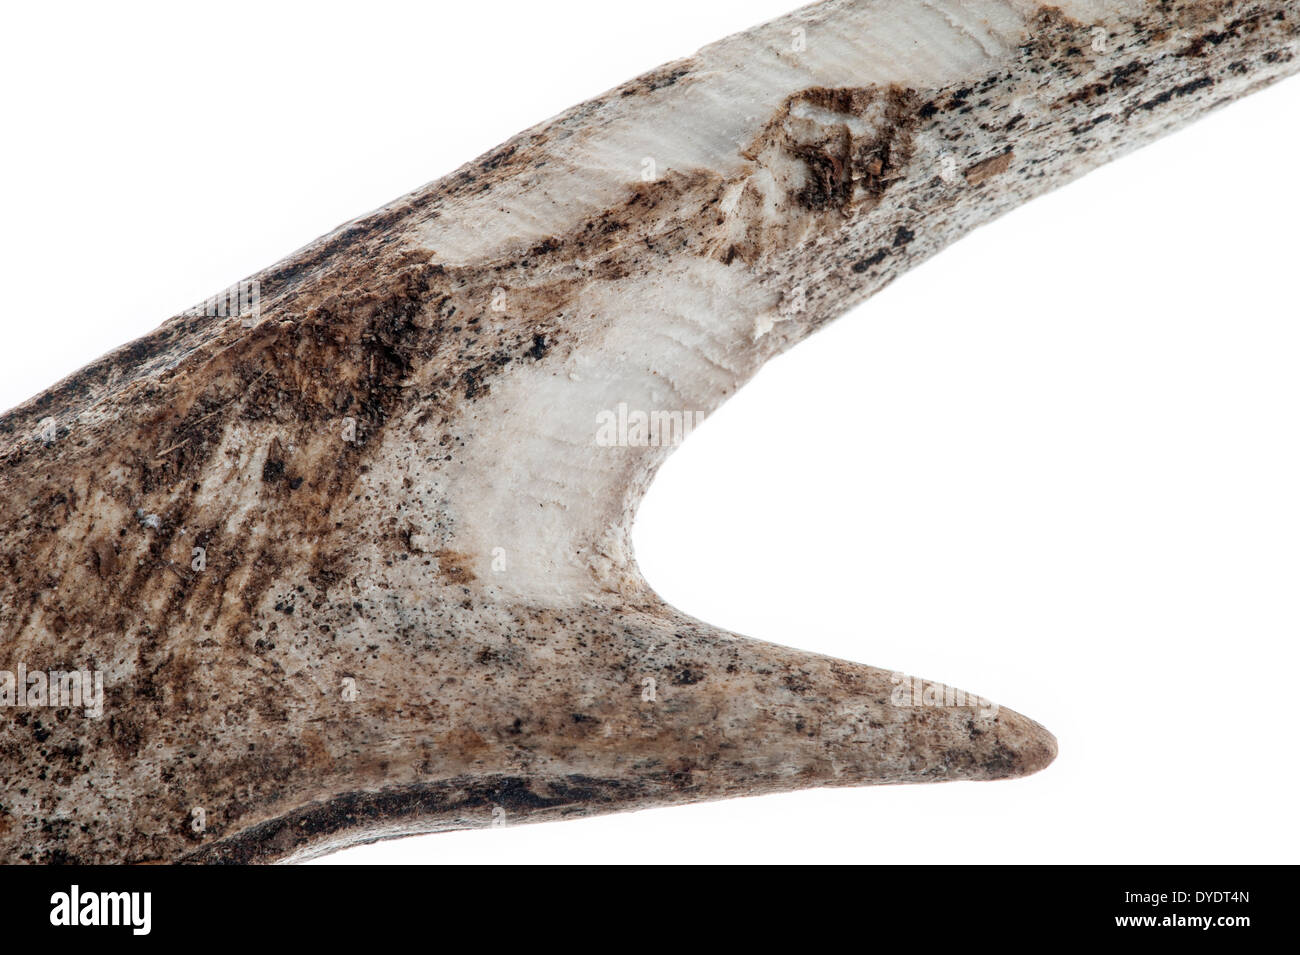 European roe deer (Capreolus capreolus) shed antler with teeth marks and gnawed upon by rodents for magnesium, calcium, minerals - Stock Image